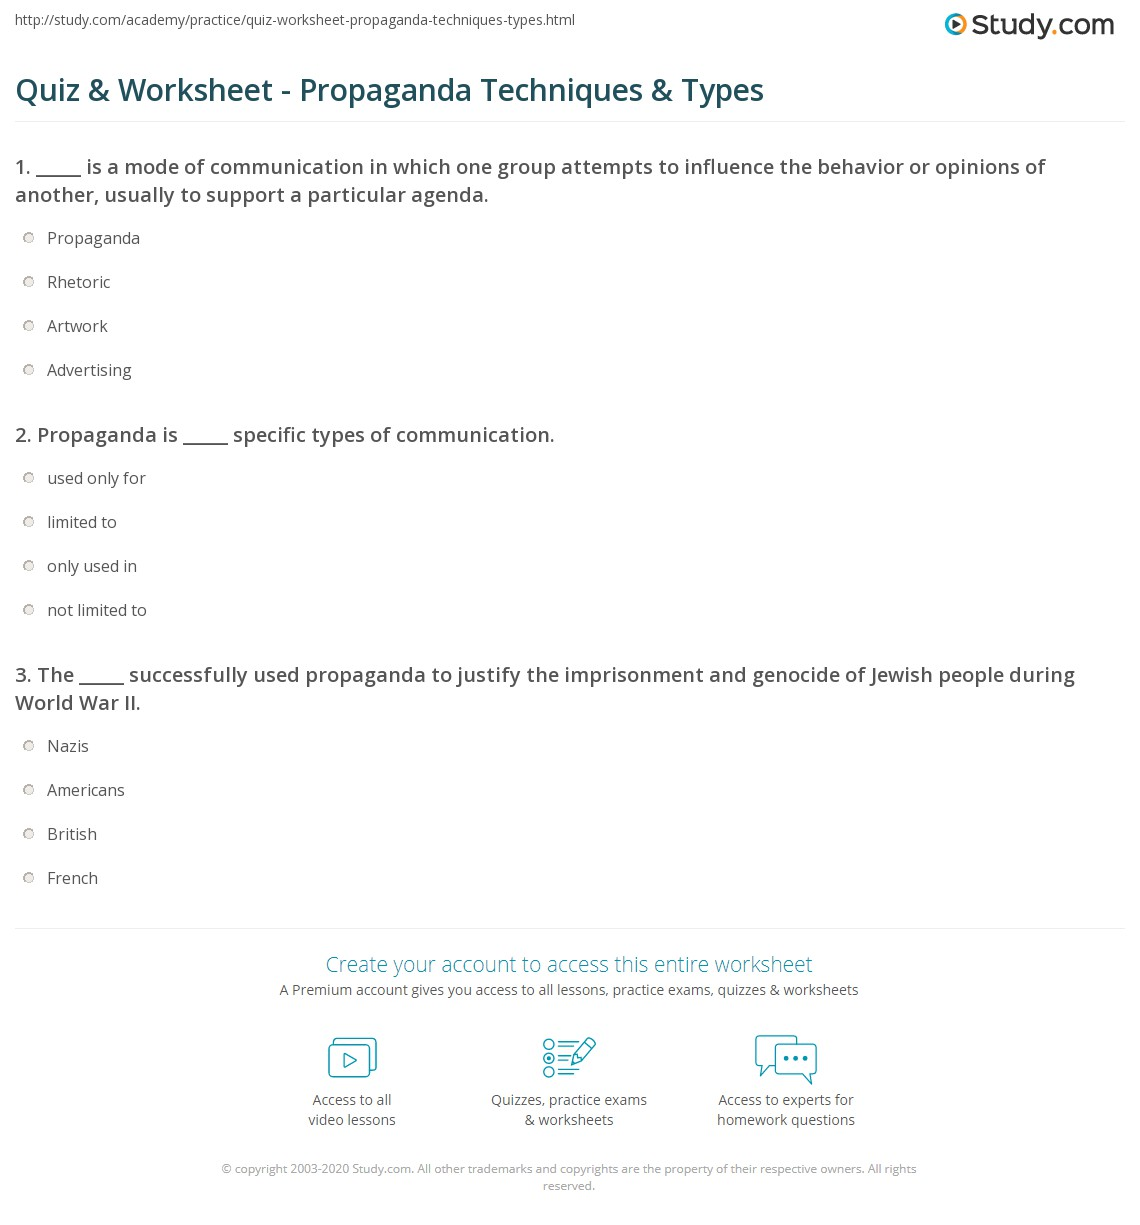 Worksheets Propaganda Techniques Worksheet Answers quiz worksheet propaganda techniques types study com print what is definition examples worksheet